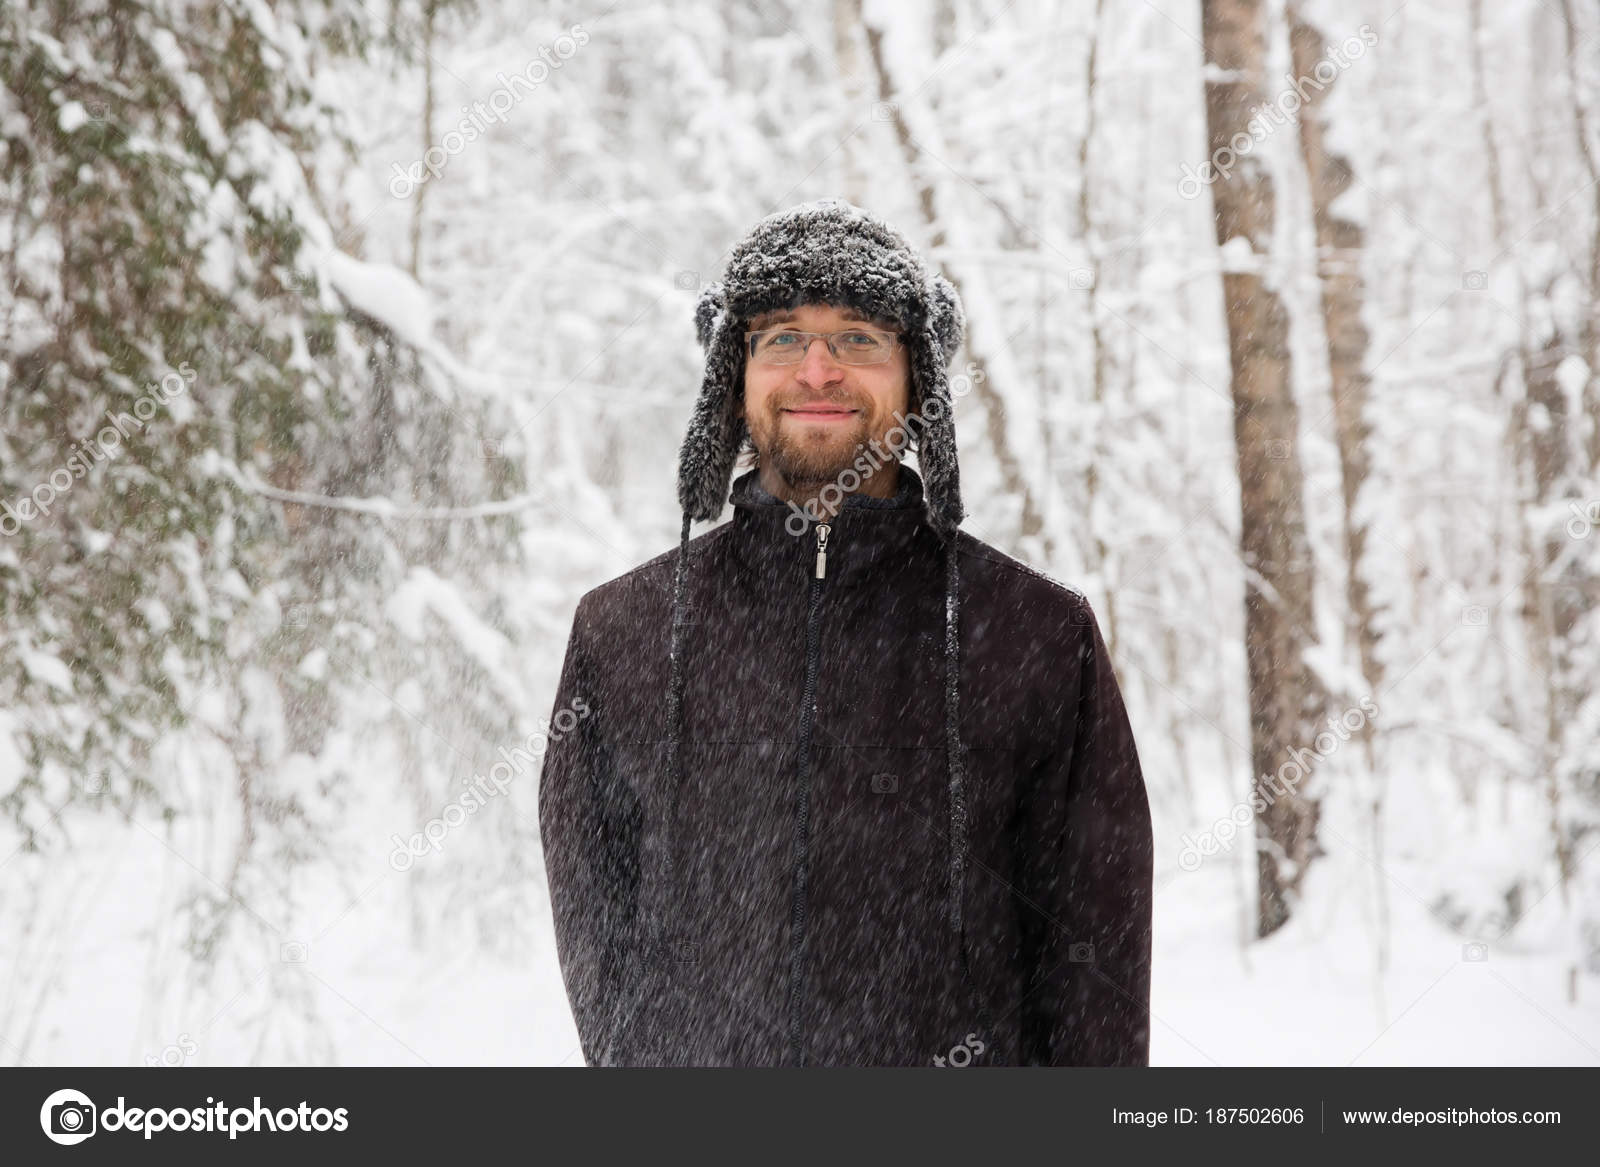 1f11b41763b Man Fur Winter Hat Ear Flaps Smiling Portrait Extreme Forest — Stock Photo